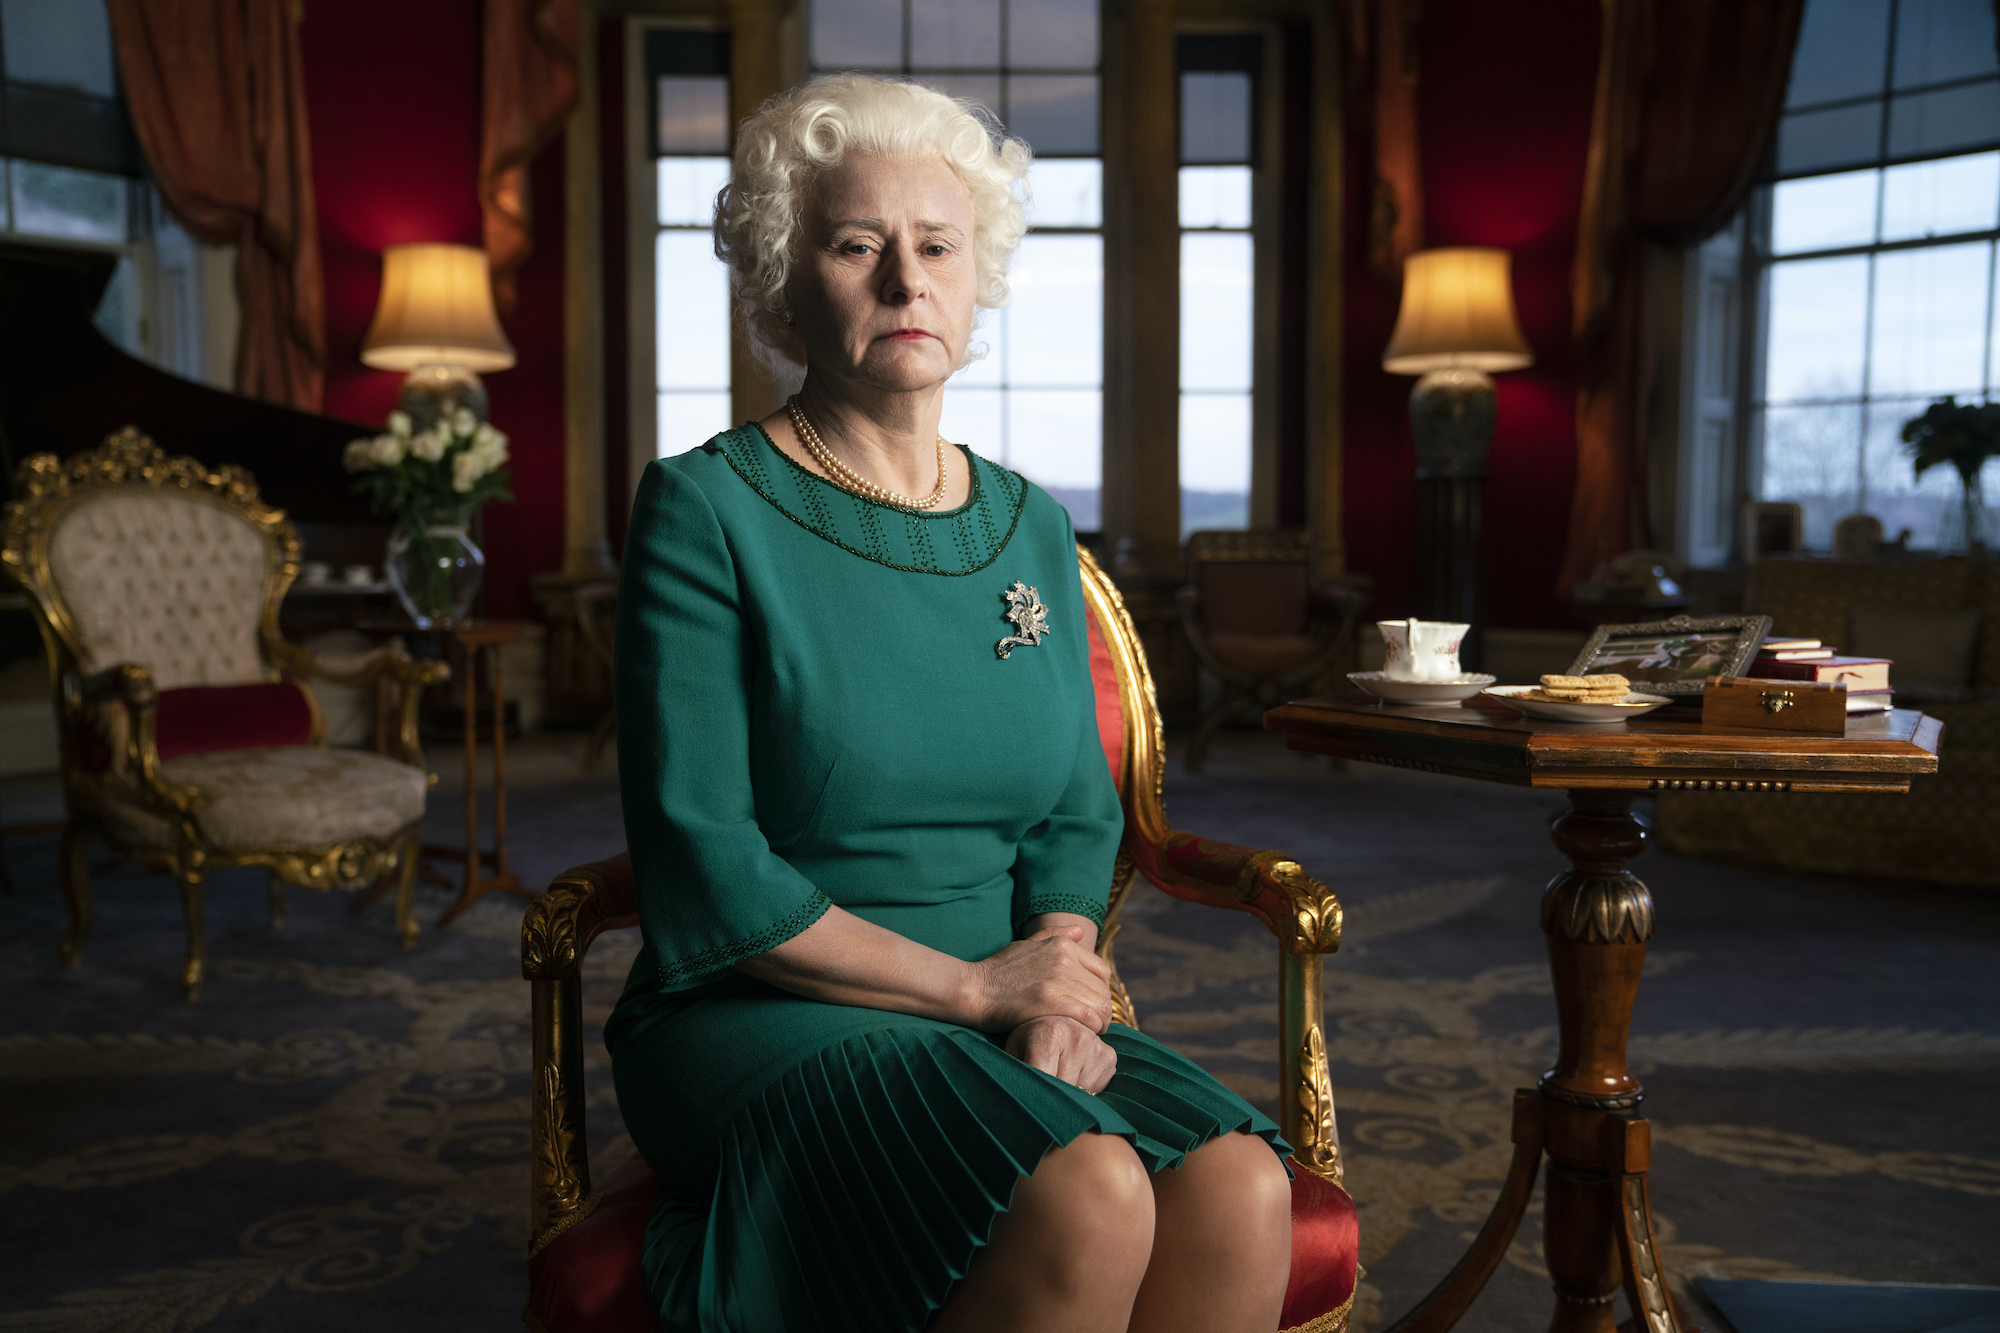 TRACEY ULLMAN as QUEEN ELIZABETH II in DEATH TO 2020